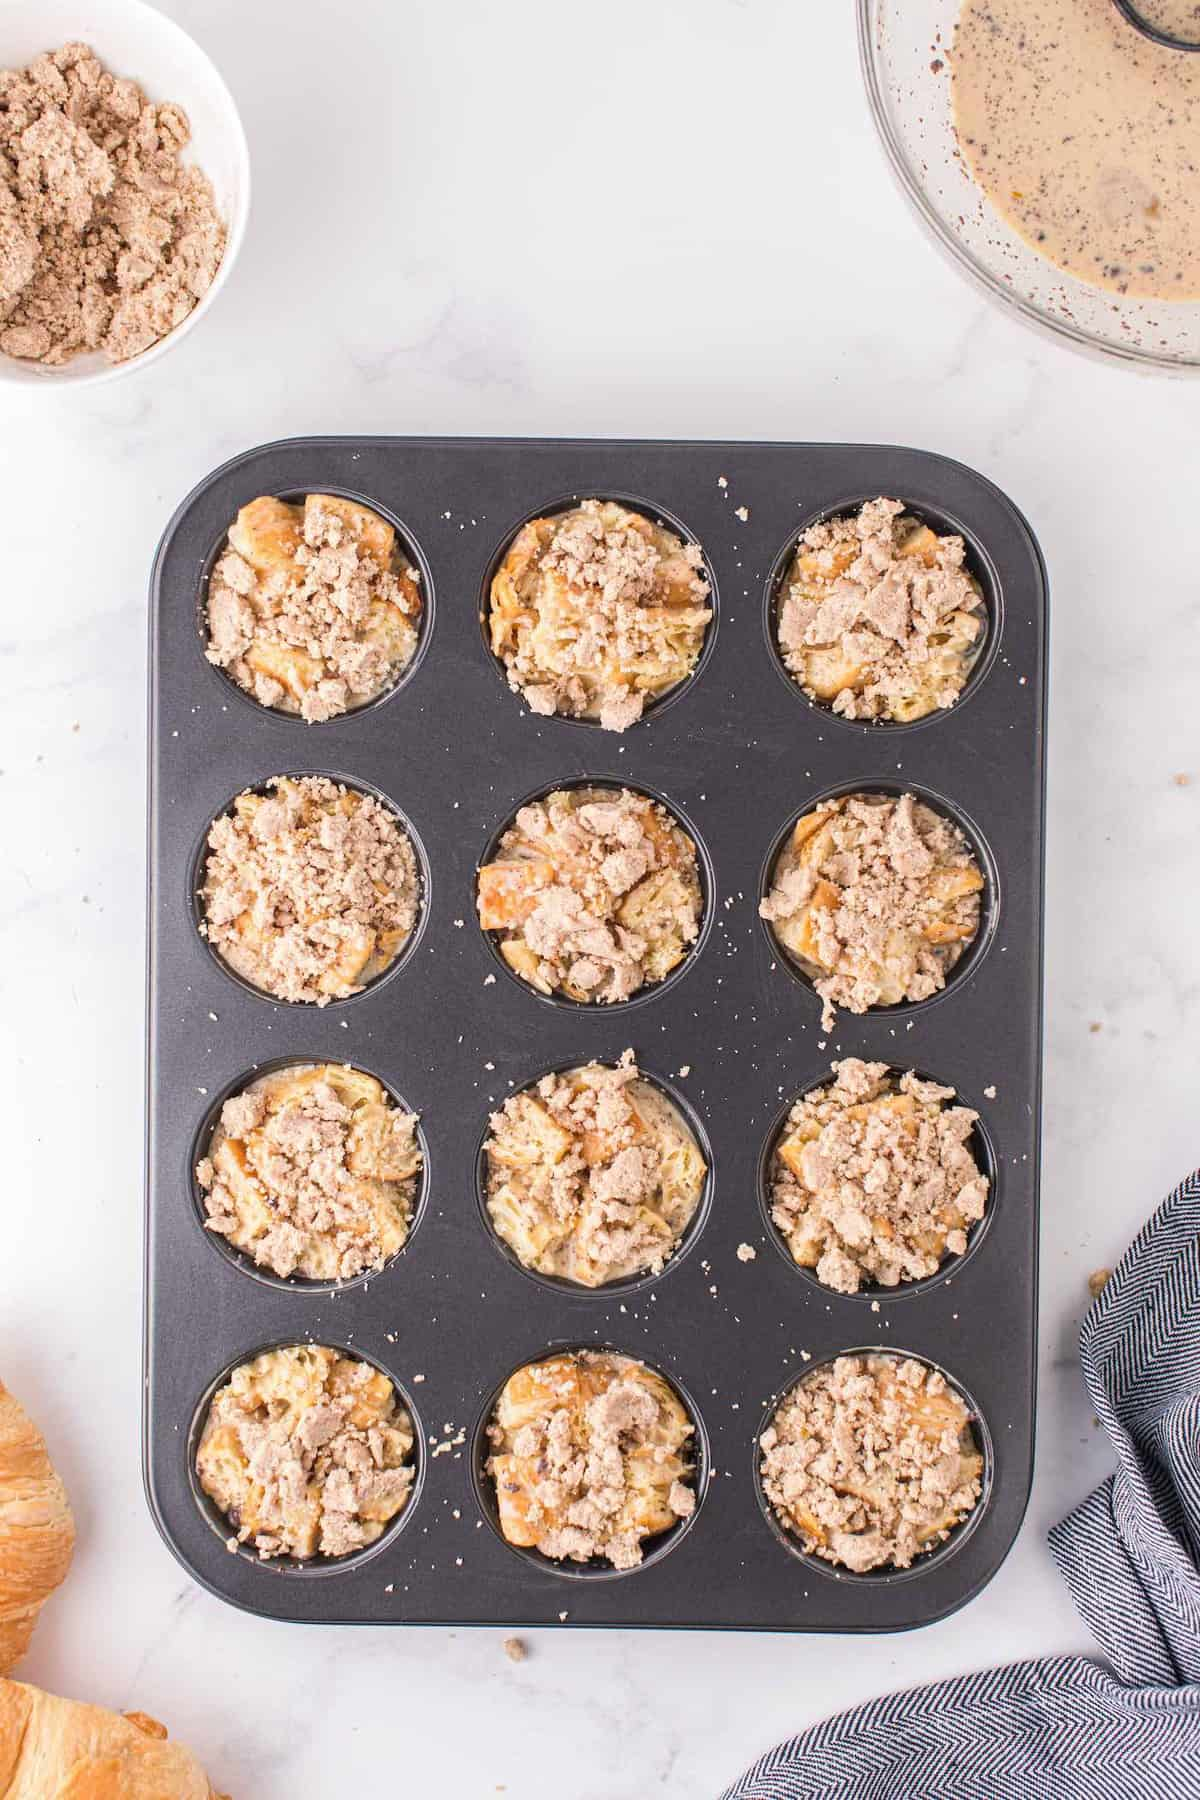 Sprinkle the crumble mixture on each muffin